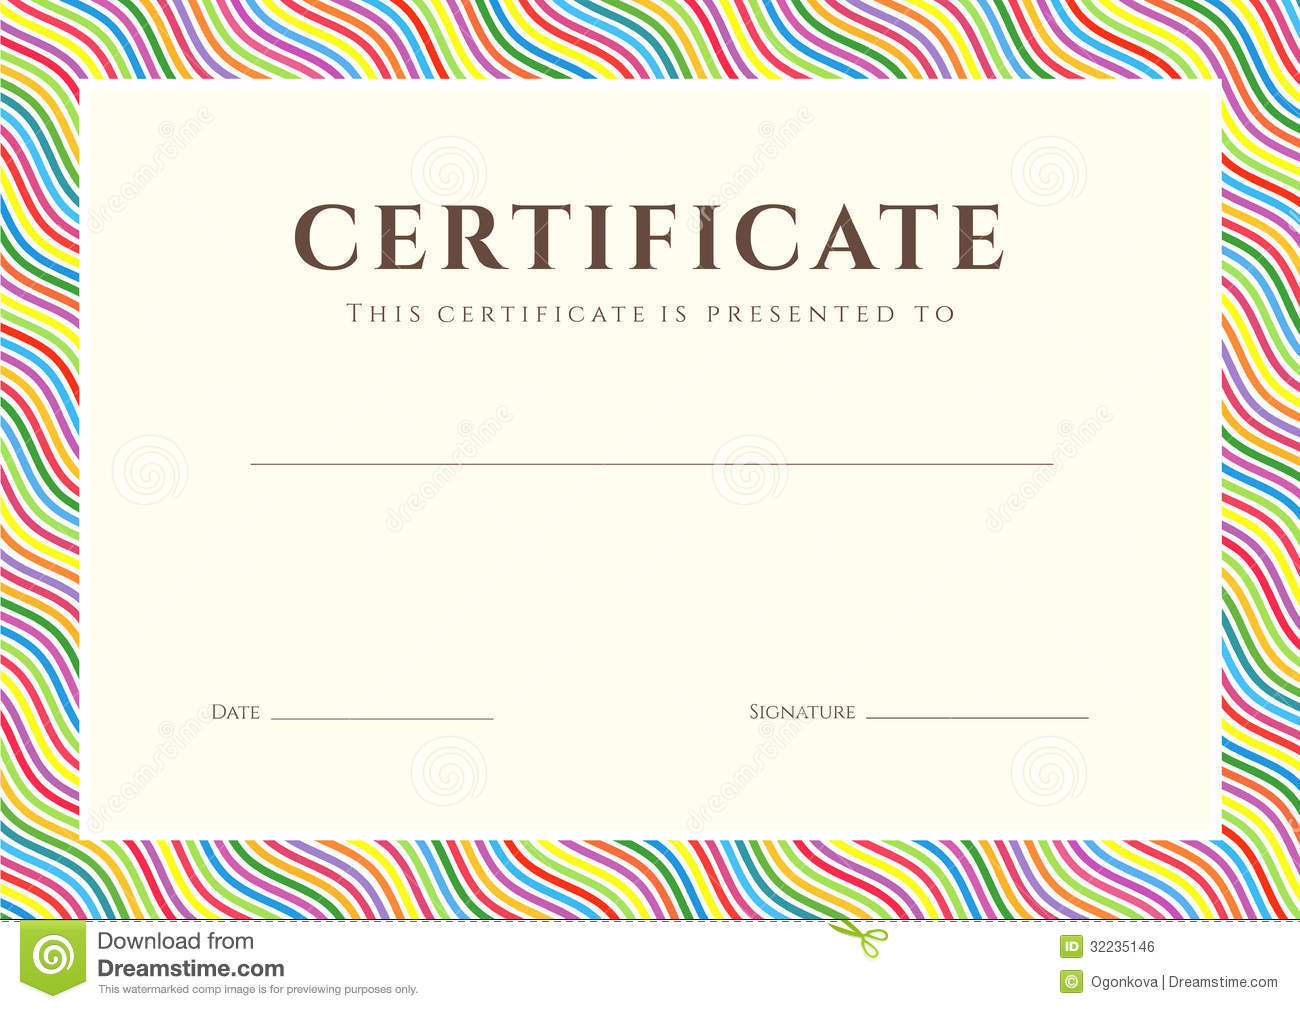 certificate of completion template or sample background with colorful ...